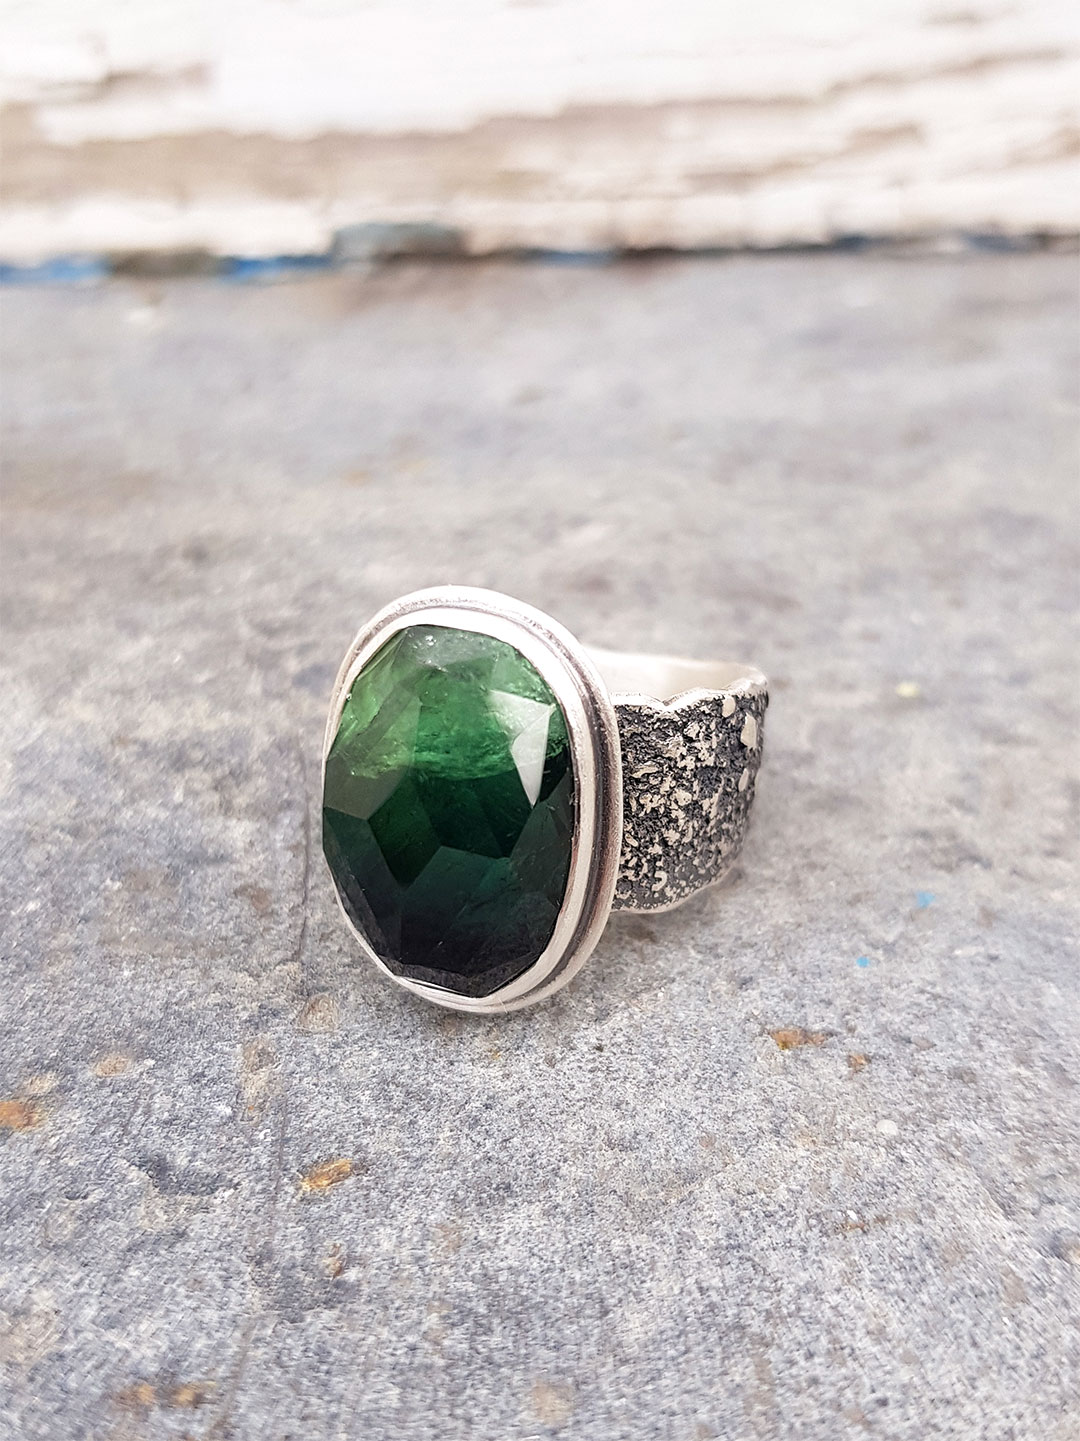 Handmade ring in sterling silver and green tourmaline